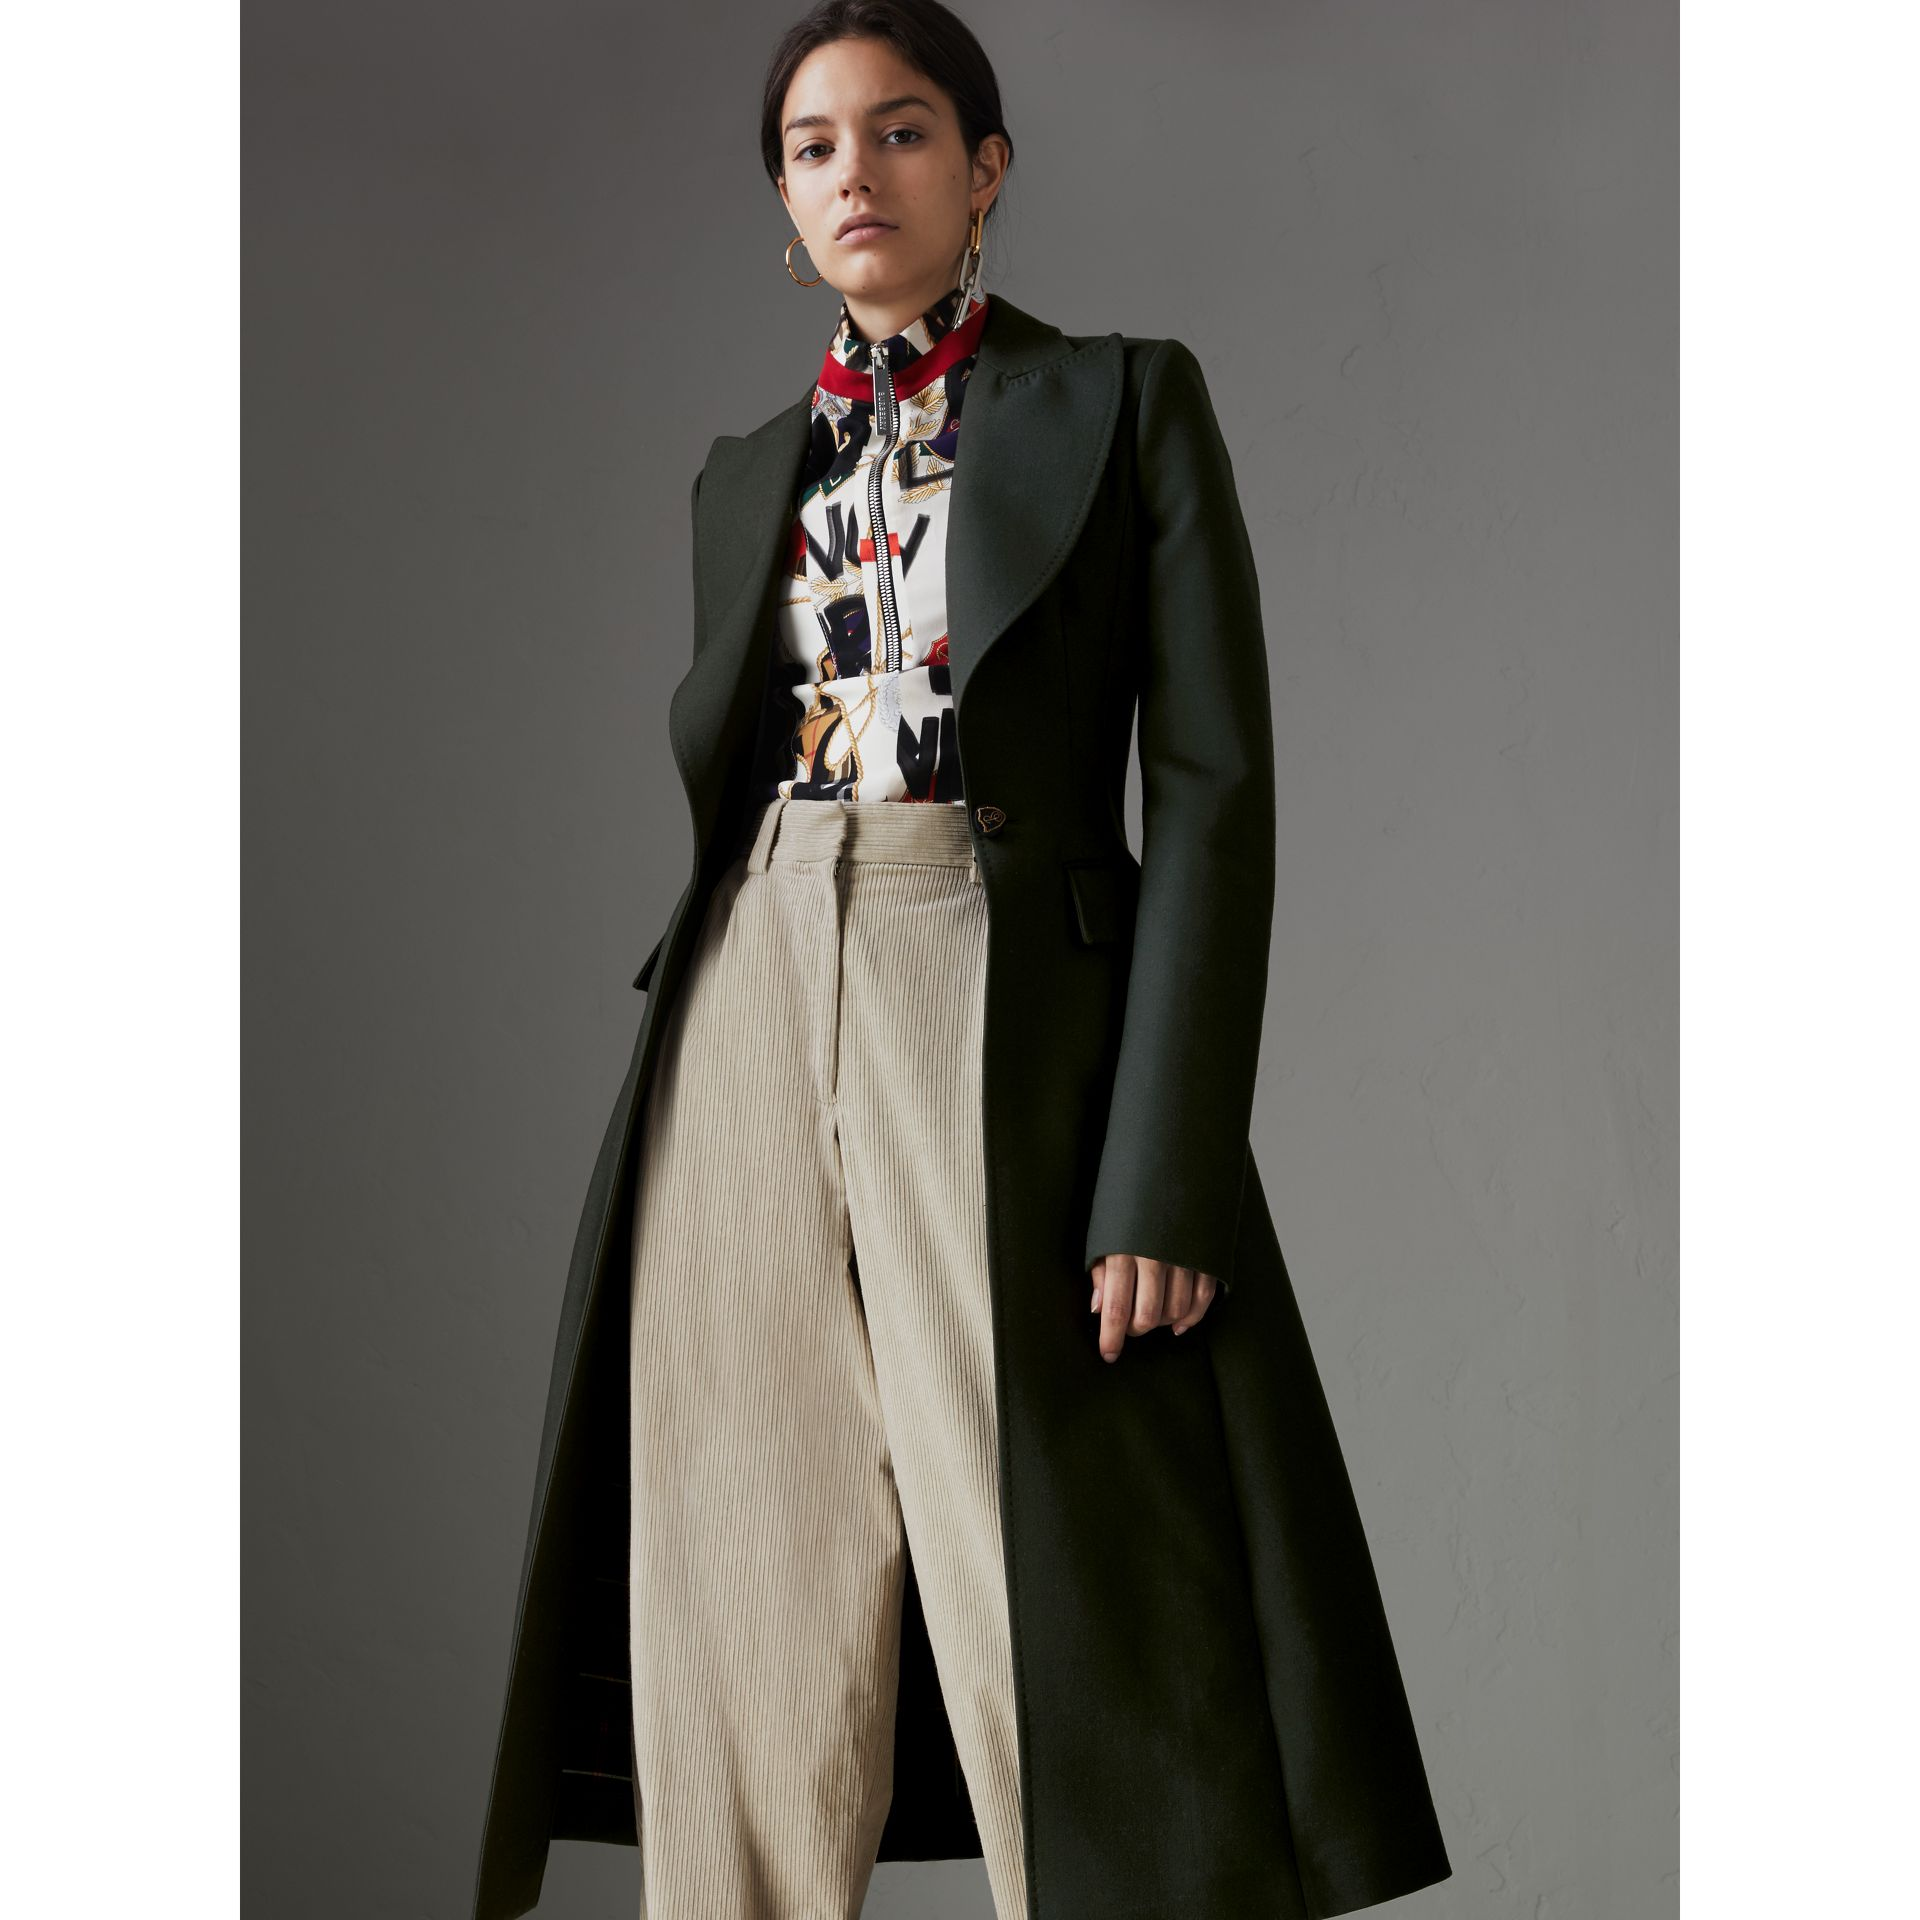 Cappotto sartoriale in lana con bottone decorato (Verdone Scuro/navy Intenso) - Donna | Burberry - immagine della galleria 5